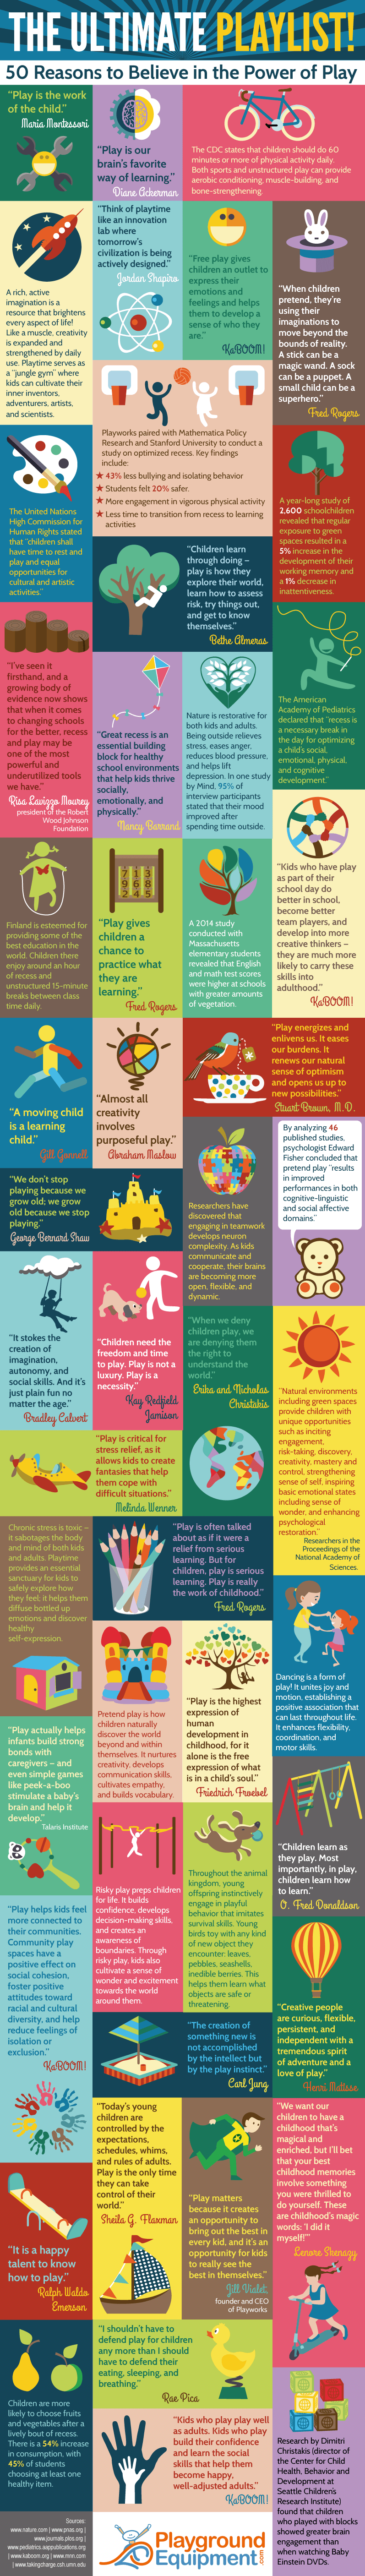 50 Reasons to Believe in the Power of Play Infographic